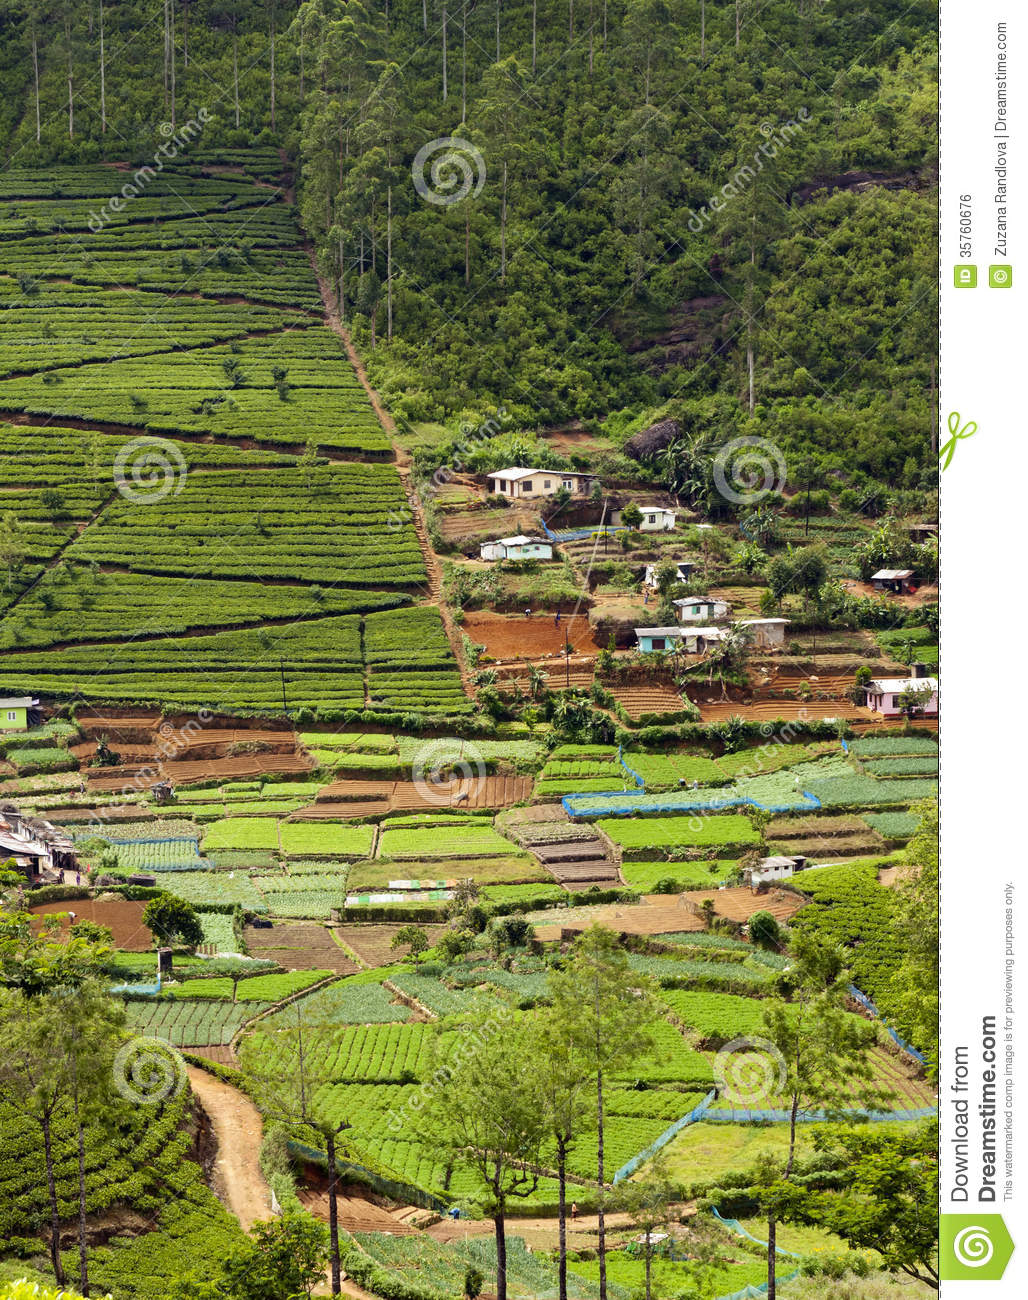 Tea plantation and vegetable gardens sri lanka royalty free stock image image 35760676 - Countryside dream gardens ...